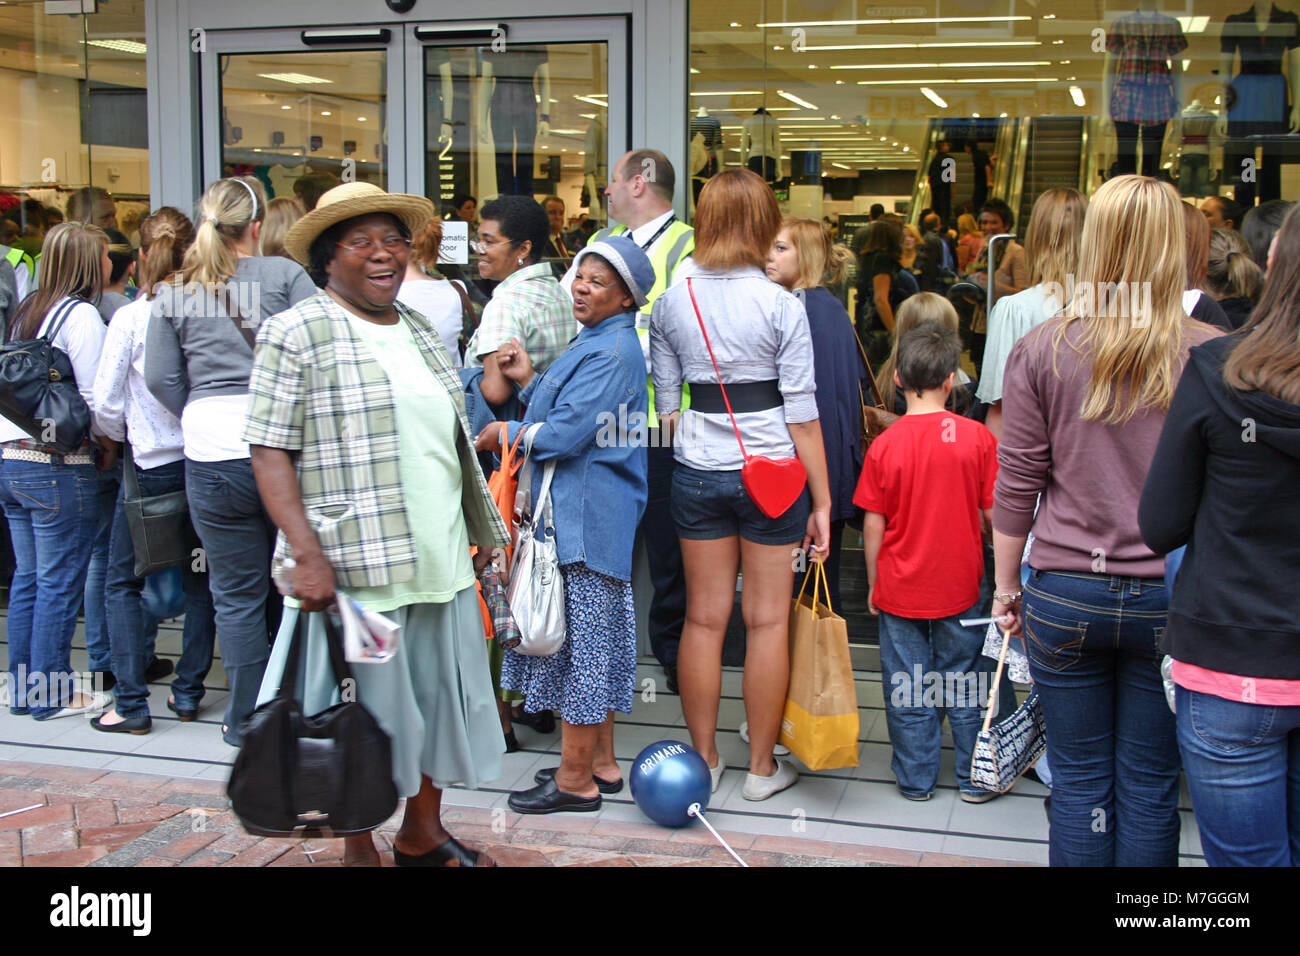 The sales, with customers queuing and rushing into Primark, Derby, UK - Stock Image